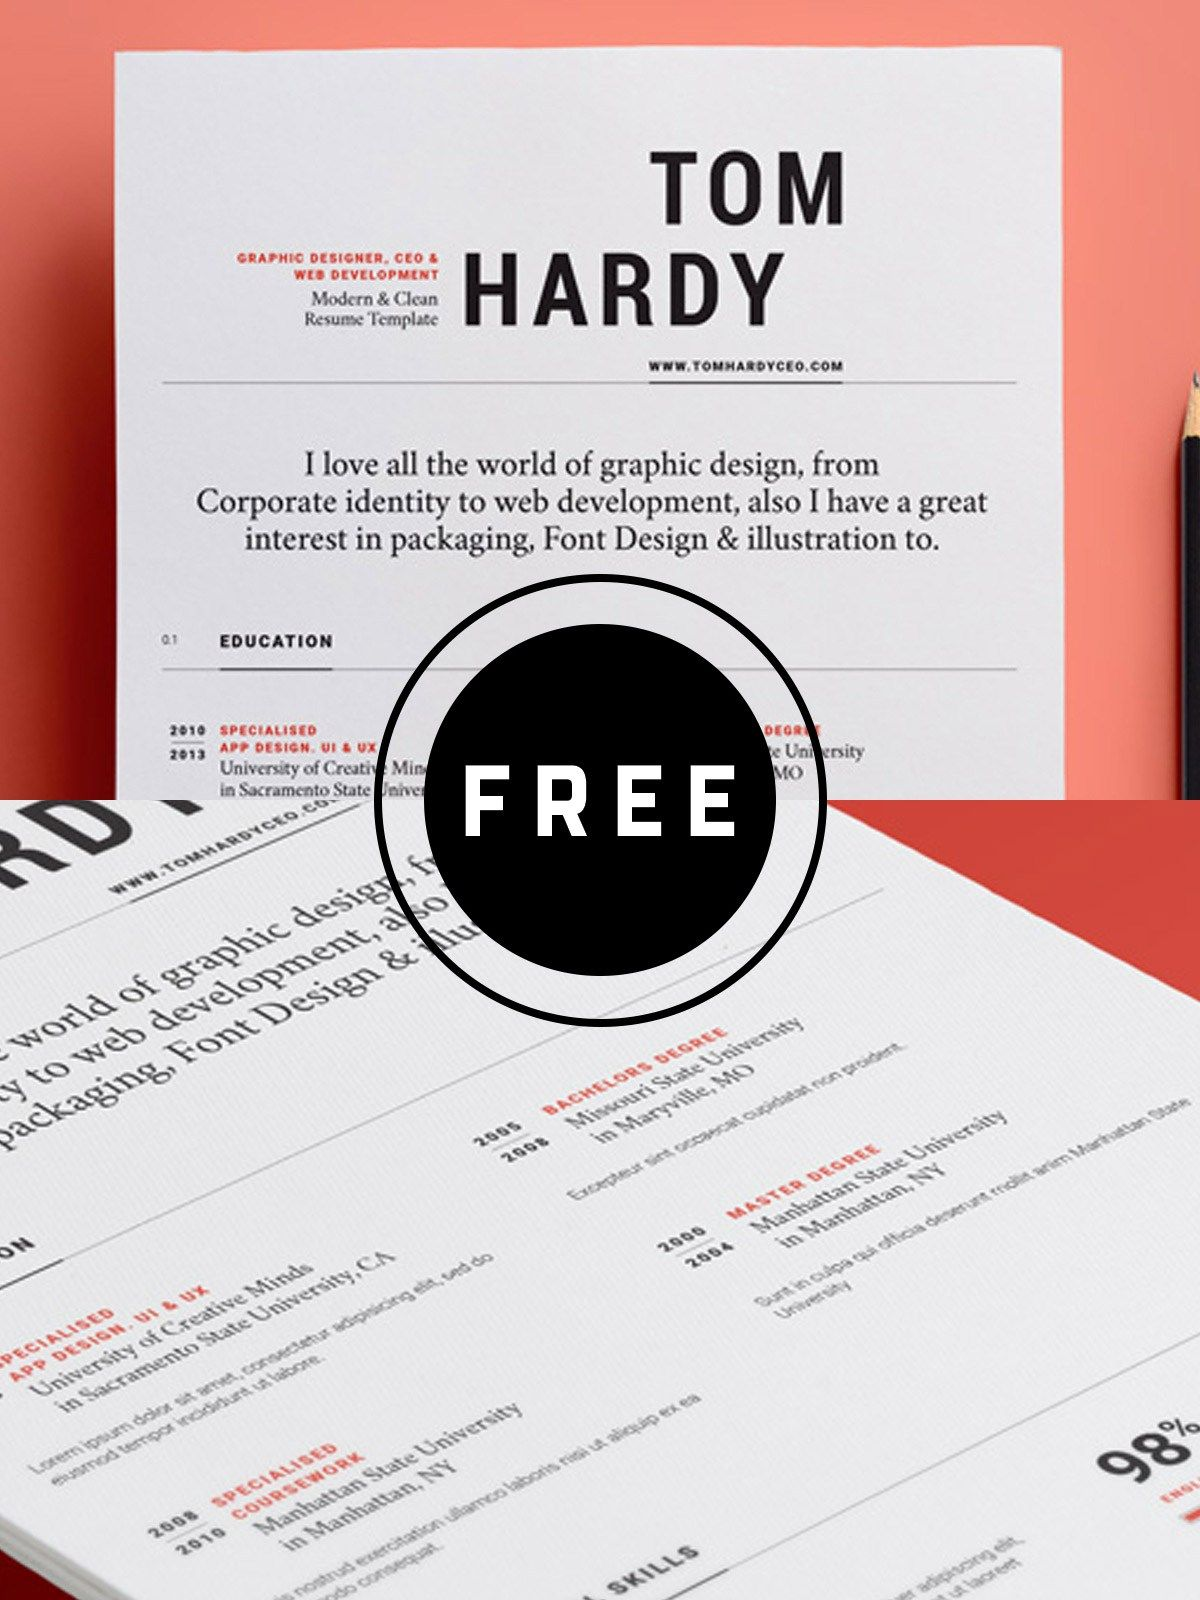 98 Awesome Free Resume Templates for 2019 Resume design